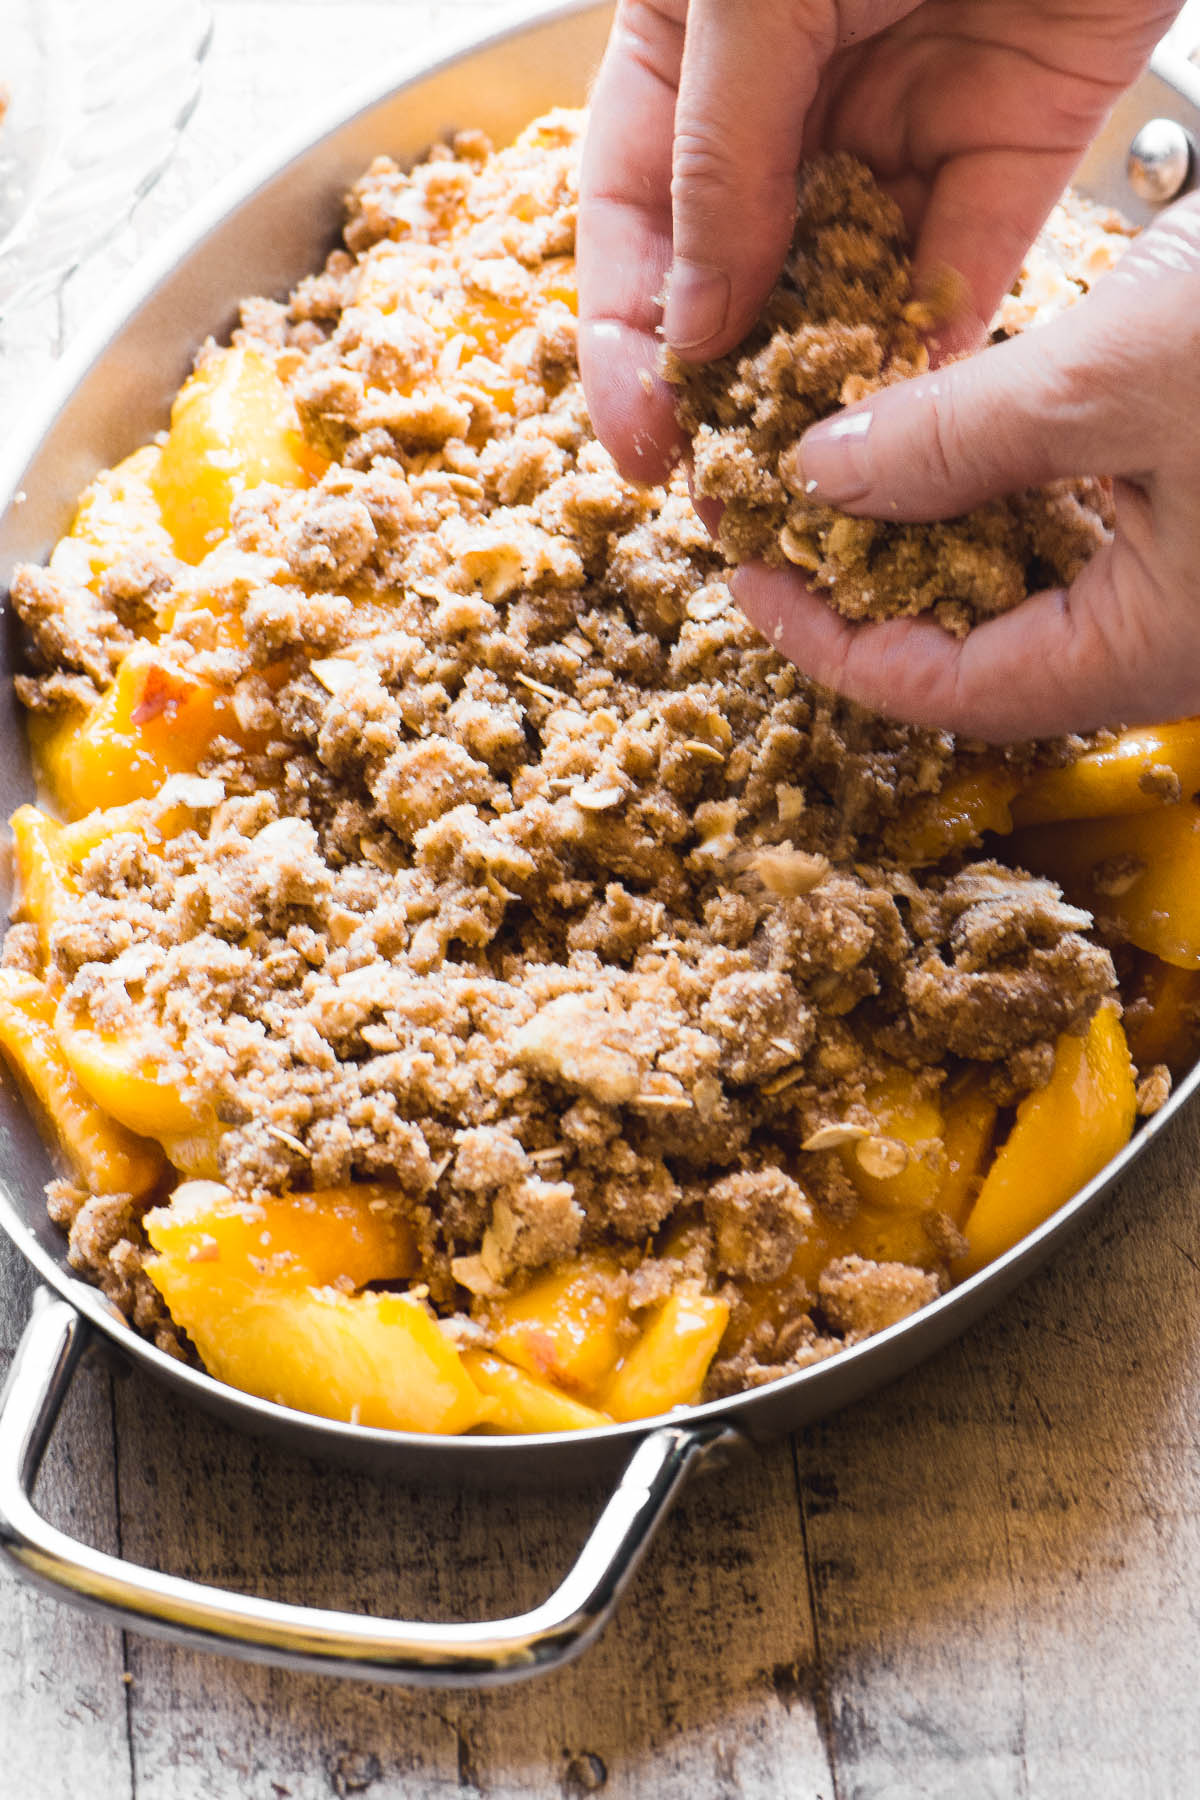 Crumbling topping on a spiced peach crisp